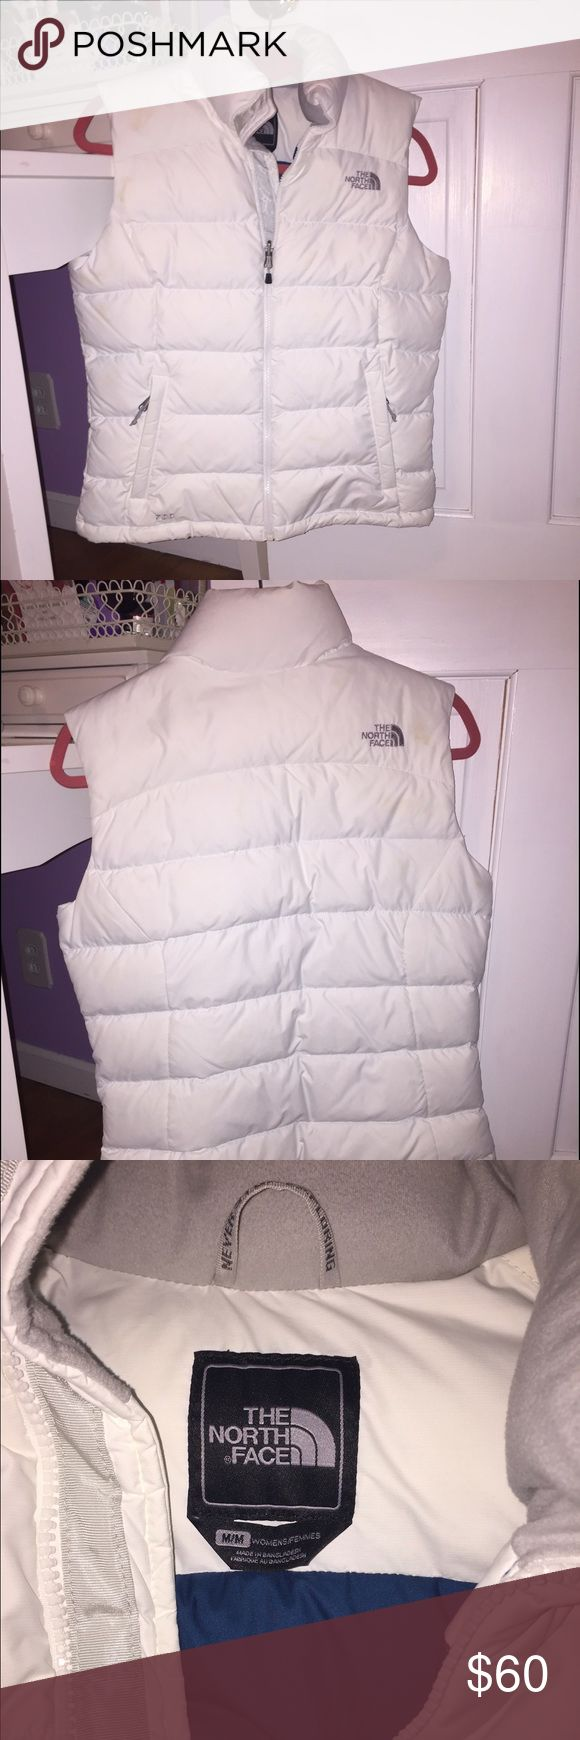 White North Face Vest Beautiful warm white North Face jacket. In perfect condition- very lightly worn! North Face Jackets & Coats Vests